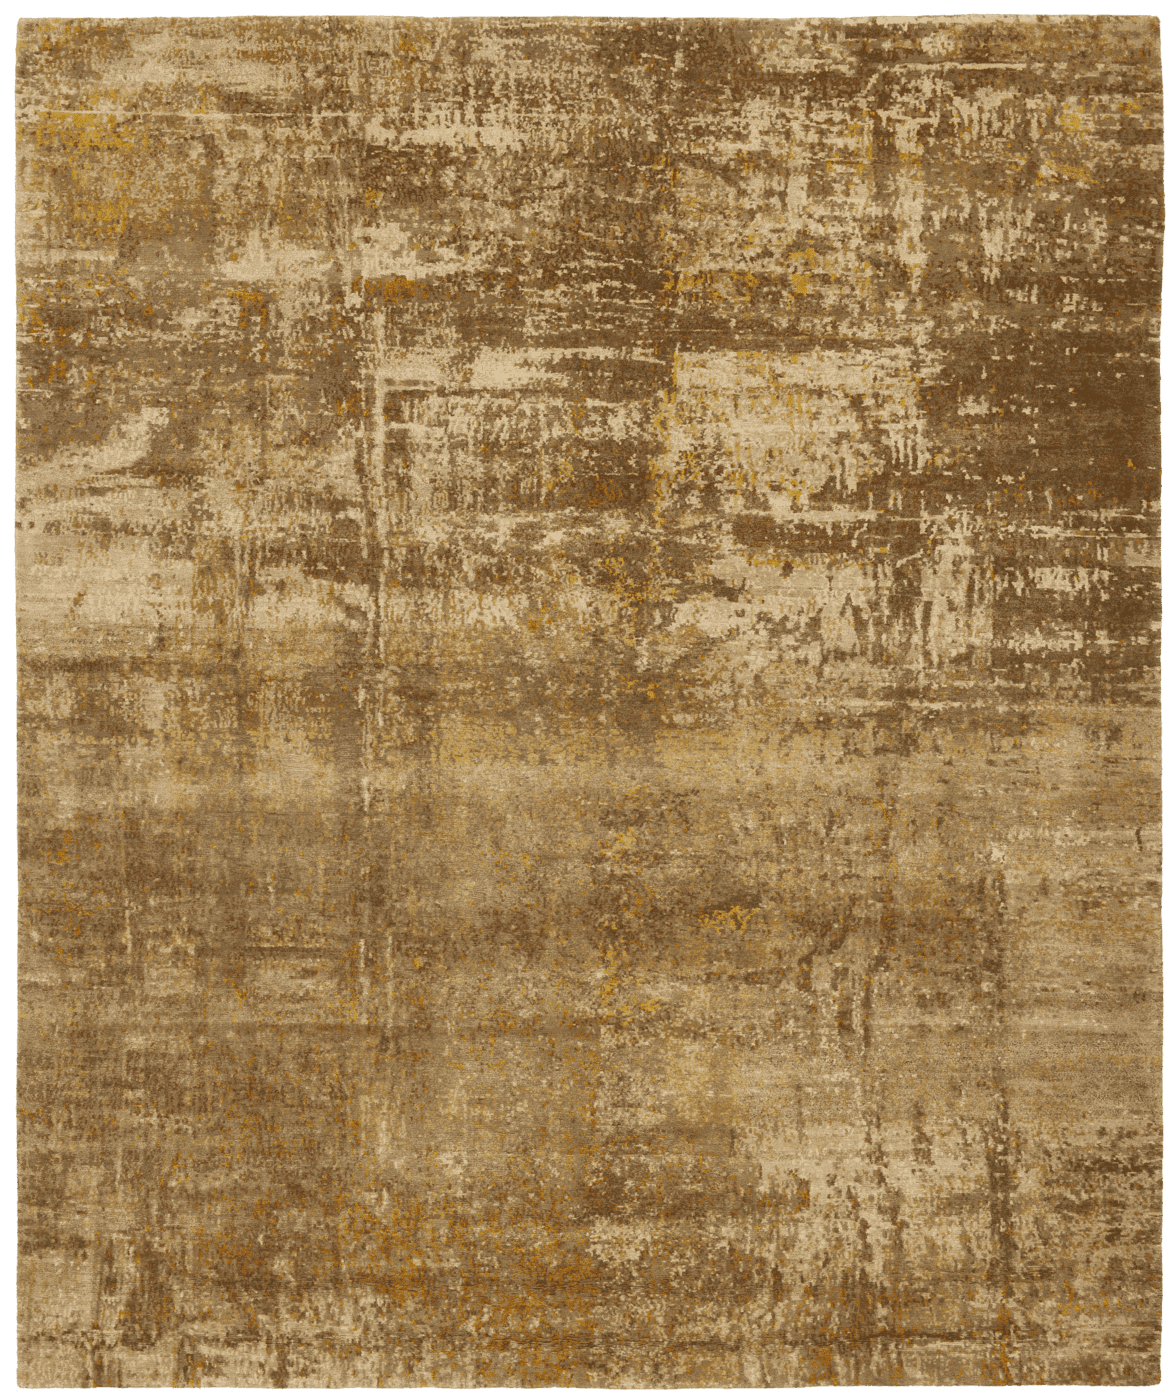 Artwork Collection Overview Jan Kath In 2020 Artwork Earthy Colors Rugs On Carpet